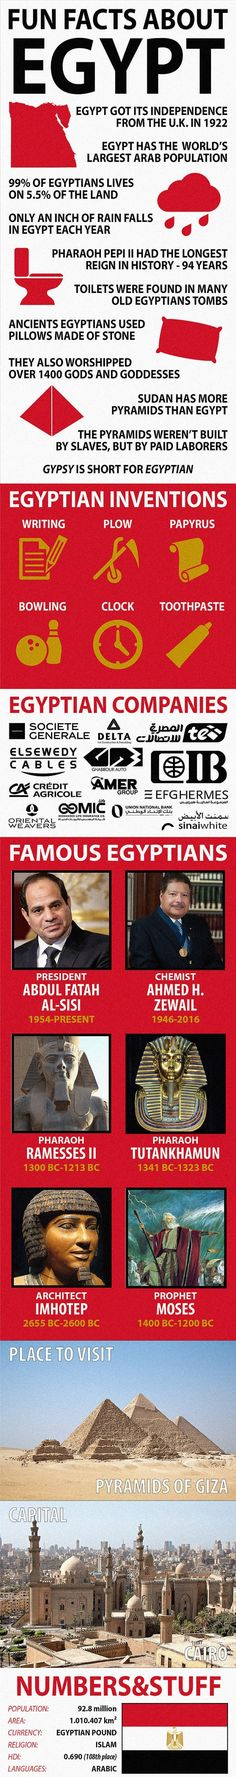 Facts about Egypt